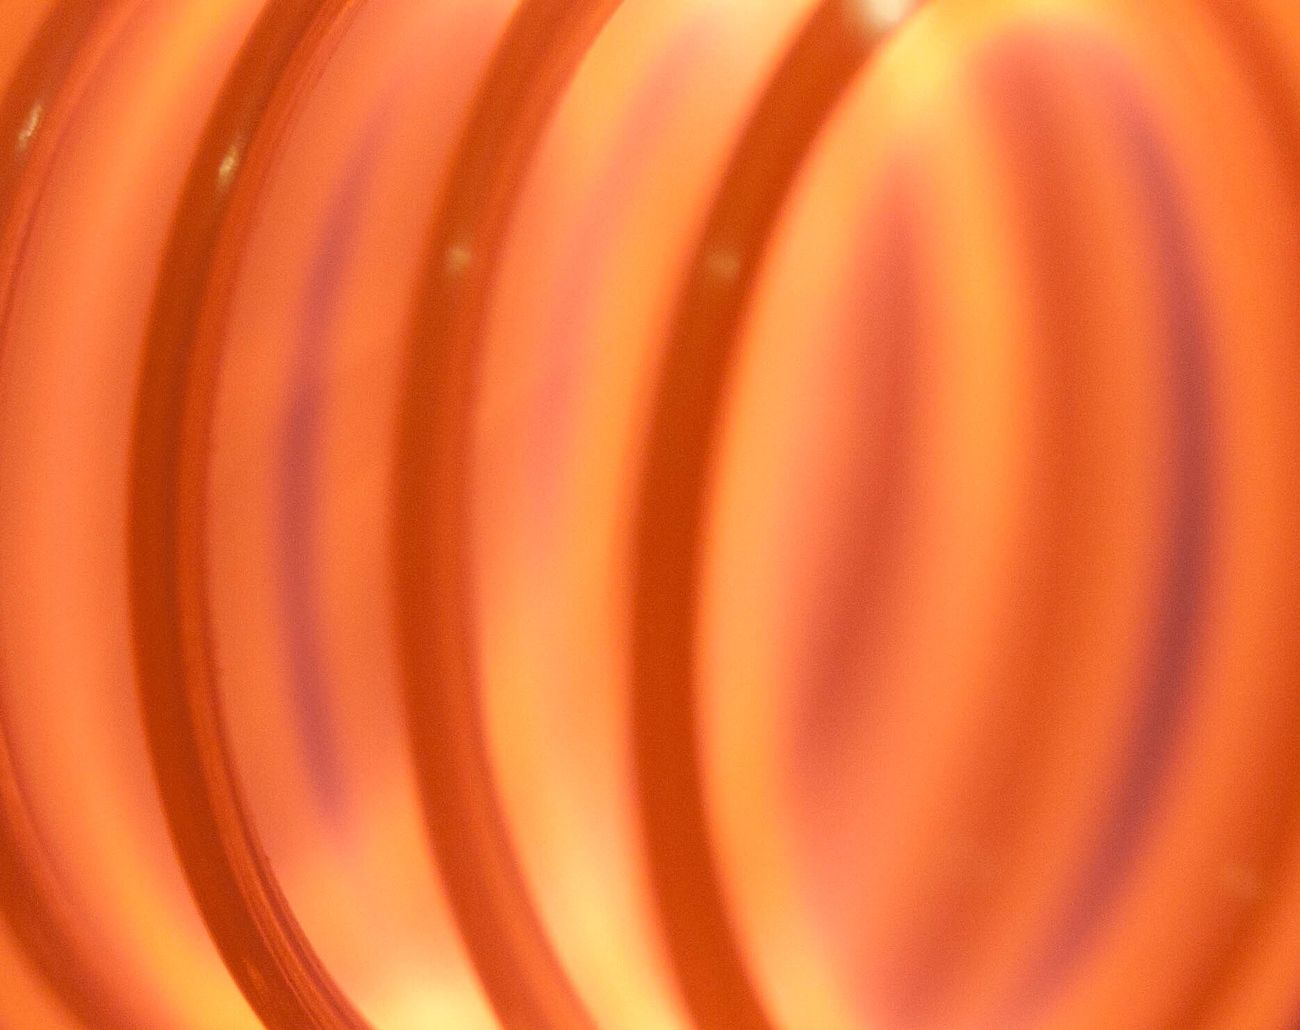 Filament Bulb Light Electricity  Orange Abstract